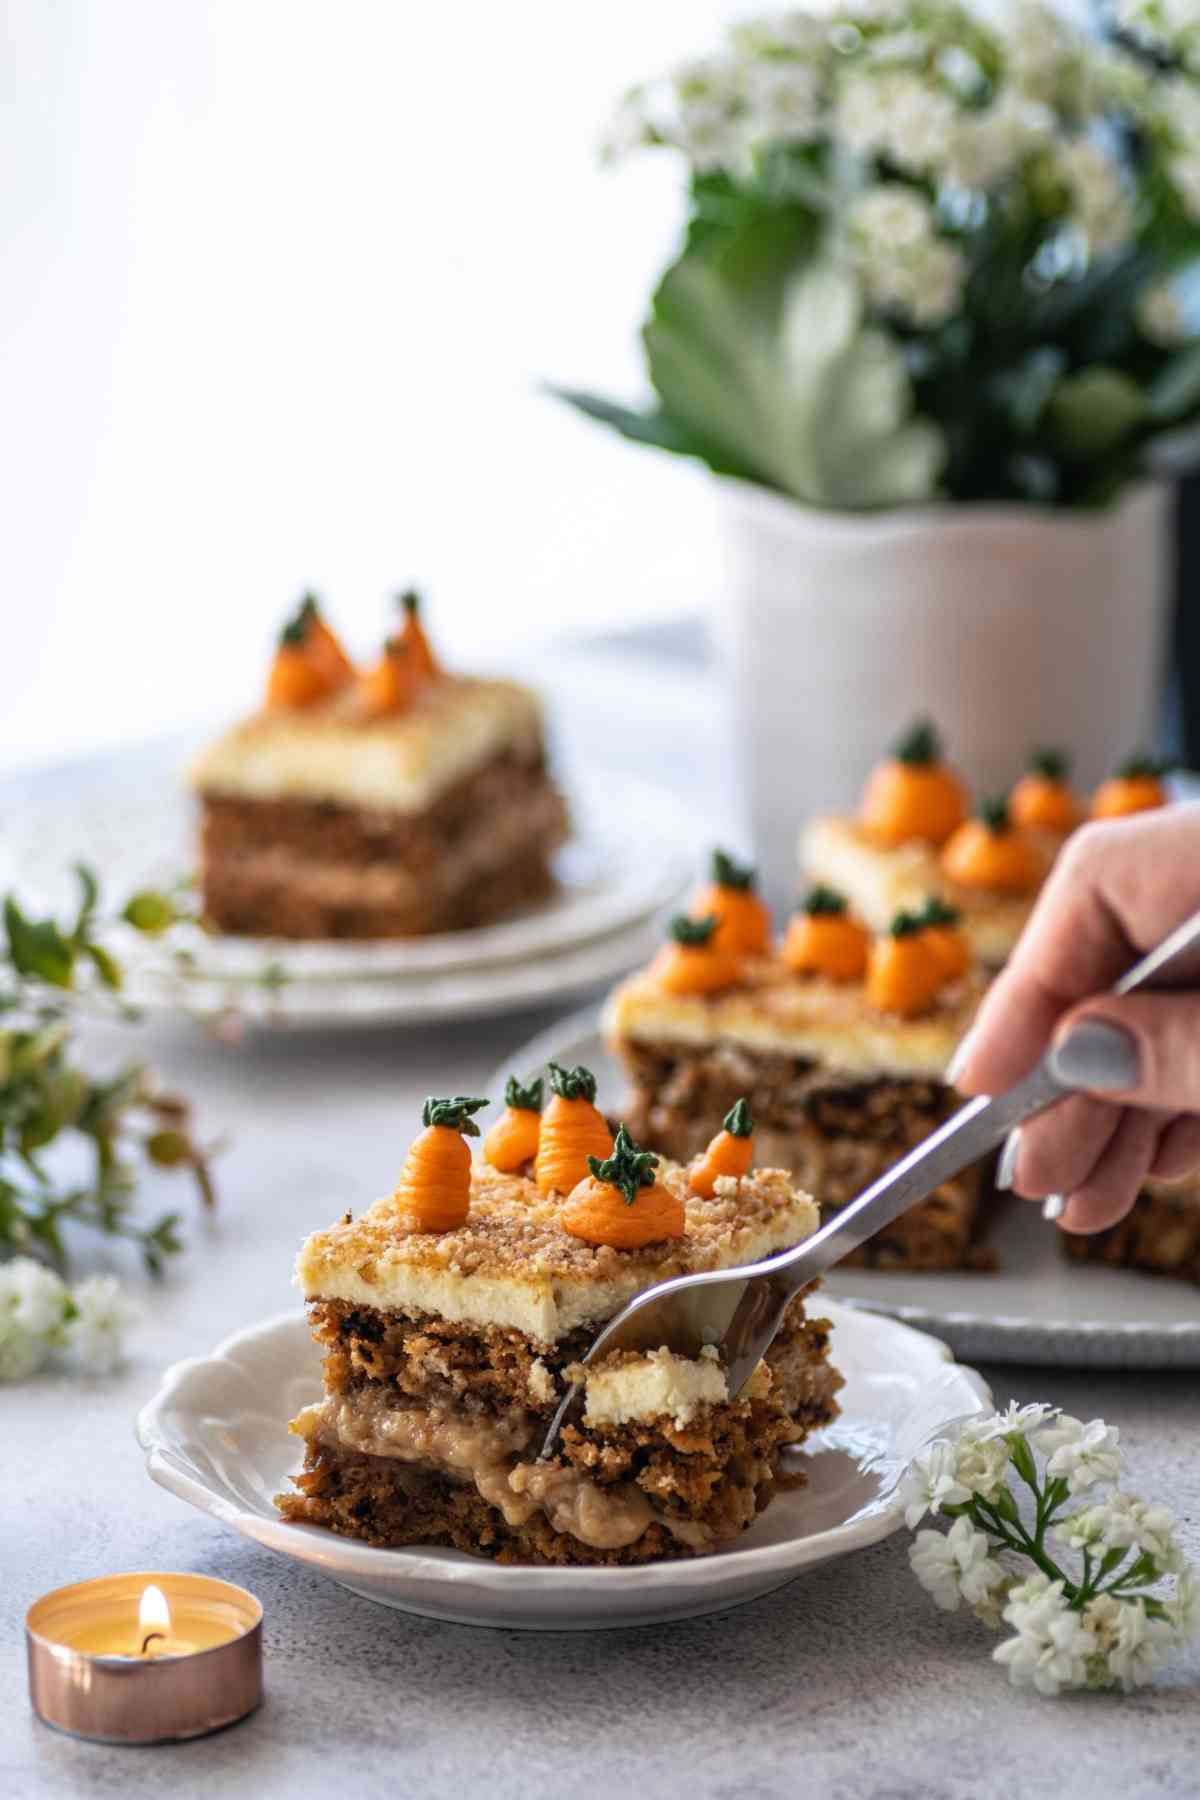 Slice of double layer carrot cake with hand holding fork